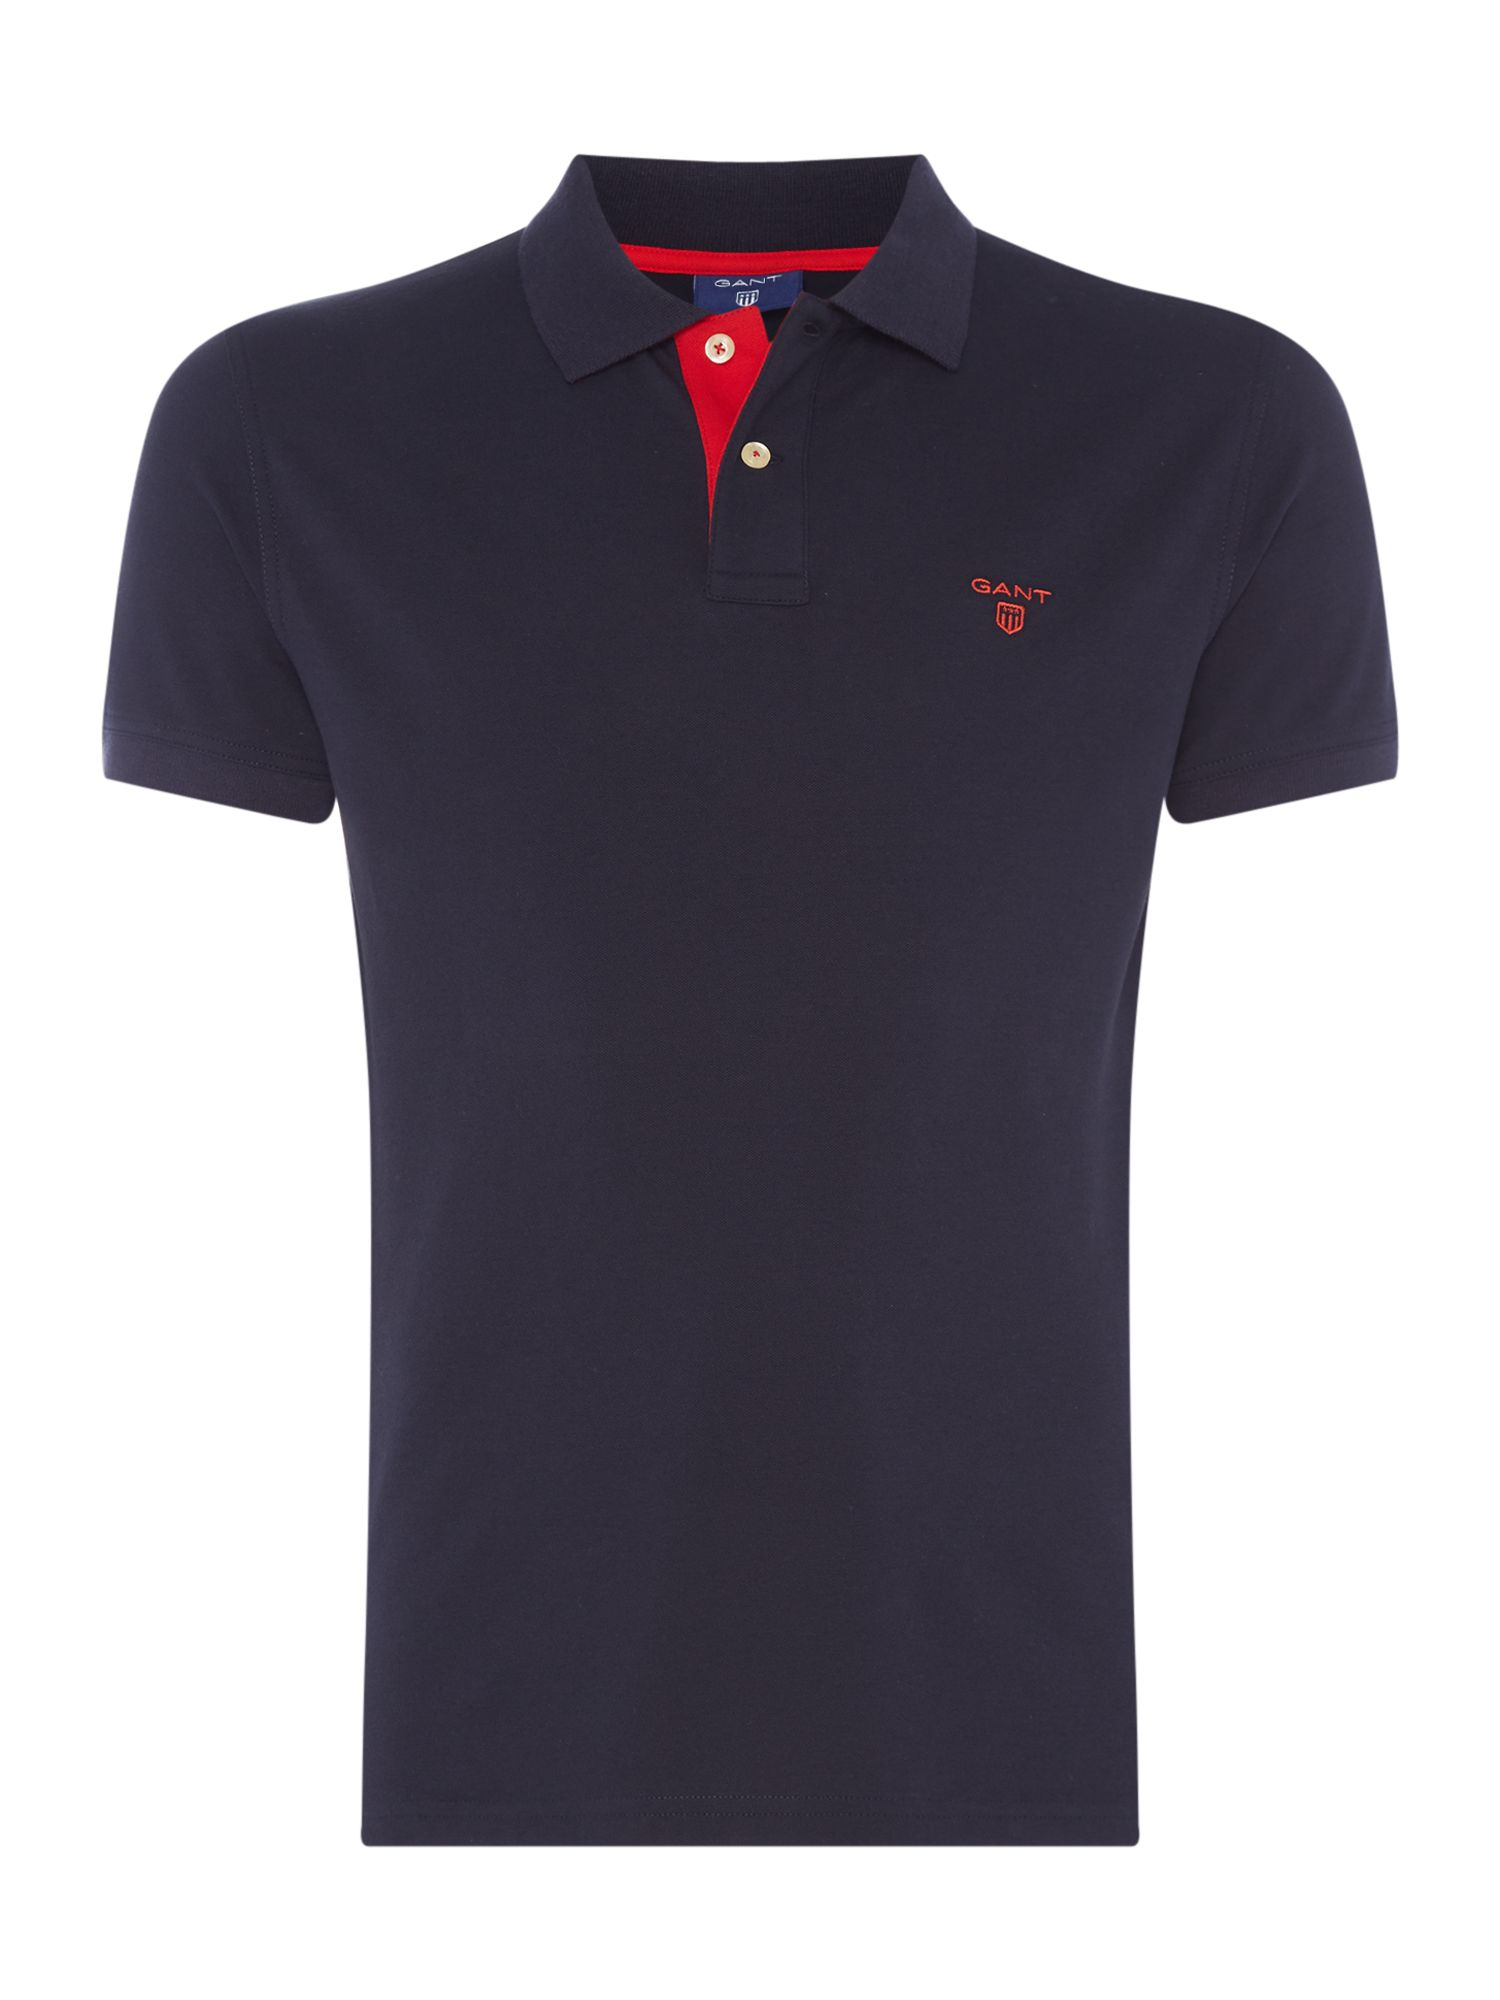 Men's Gant Contrast Collar Polo Shirt, Dark Blue